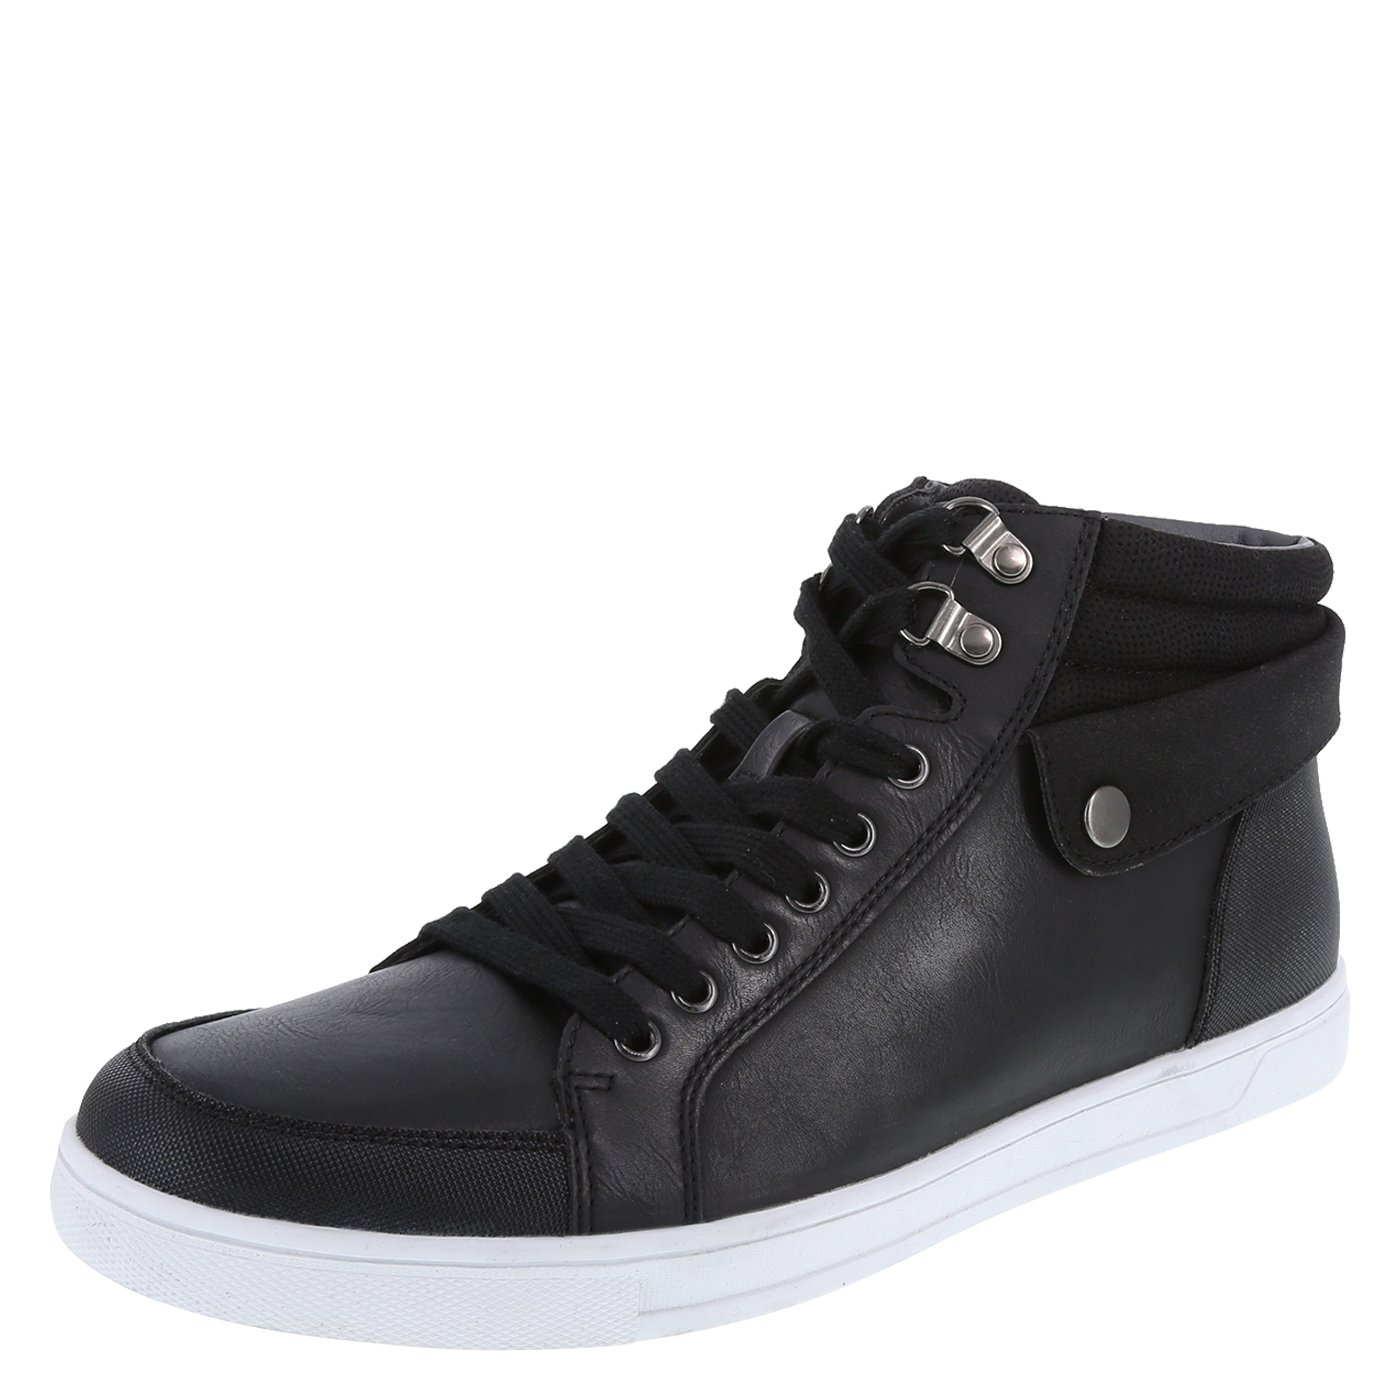 Airwalk Men's Black Men's Ian High-Top 11 Regular by Airwalk (Image #1)